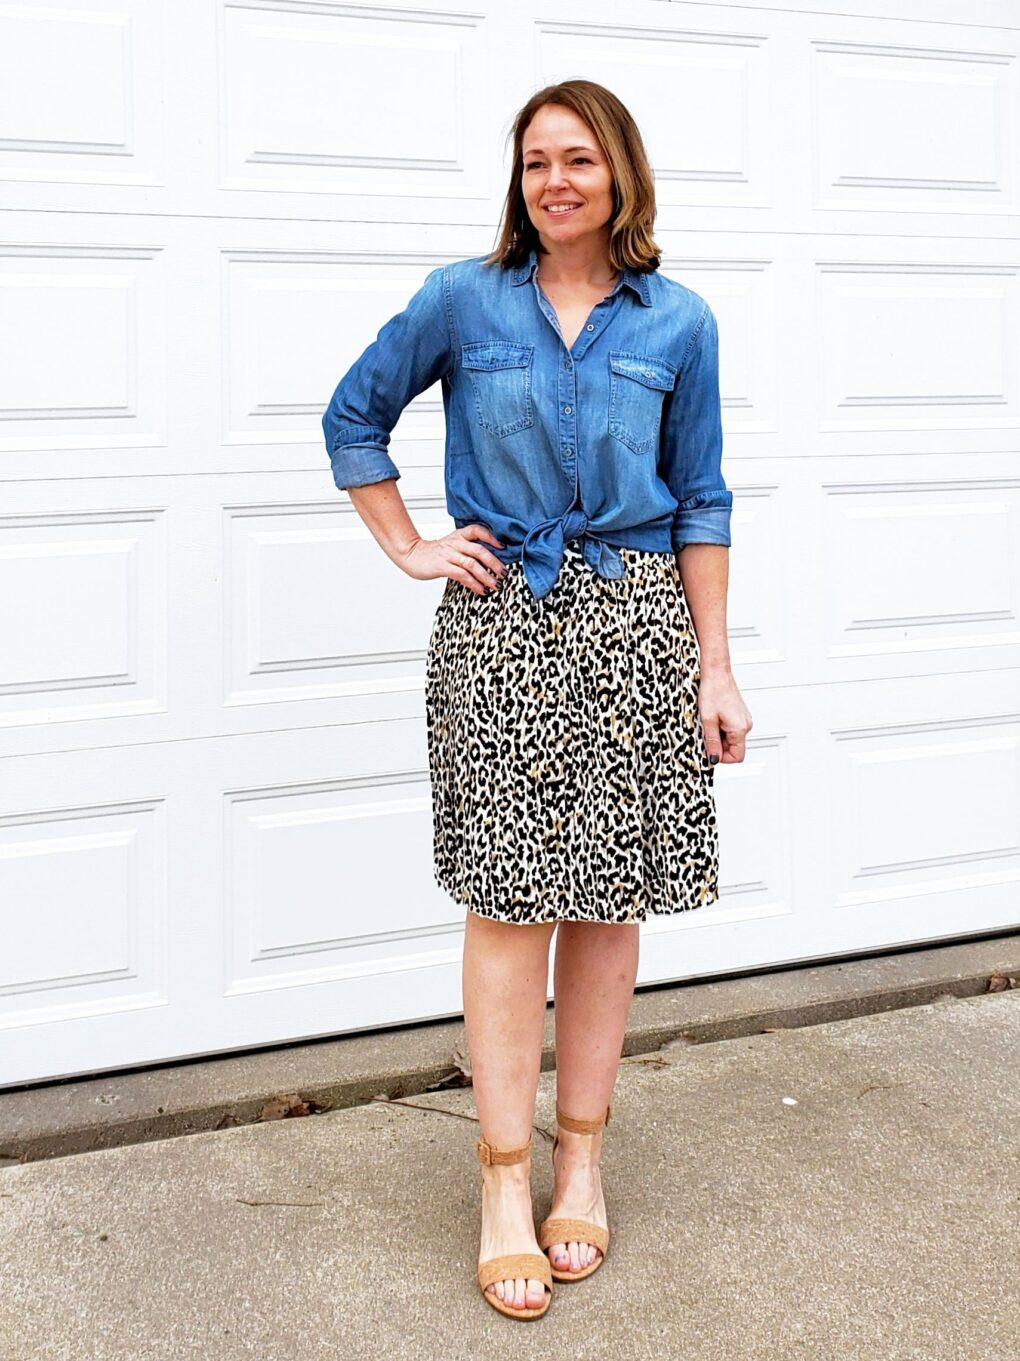 Chambray shirt with leopard skirt and heels